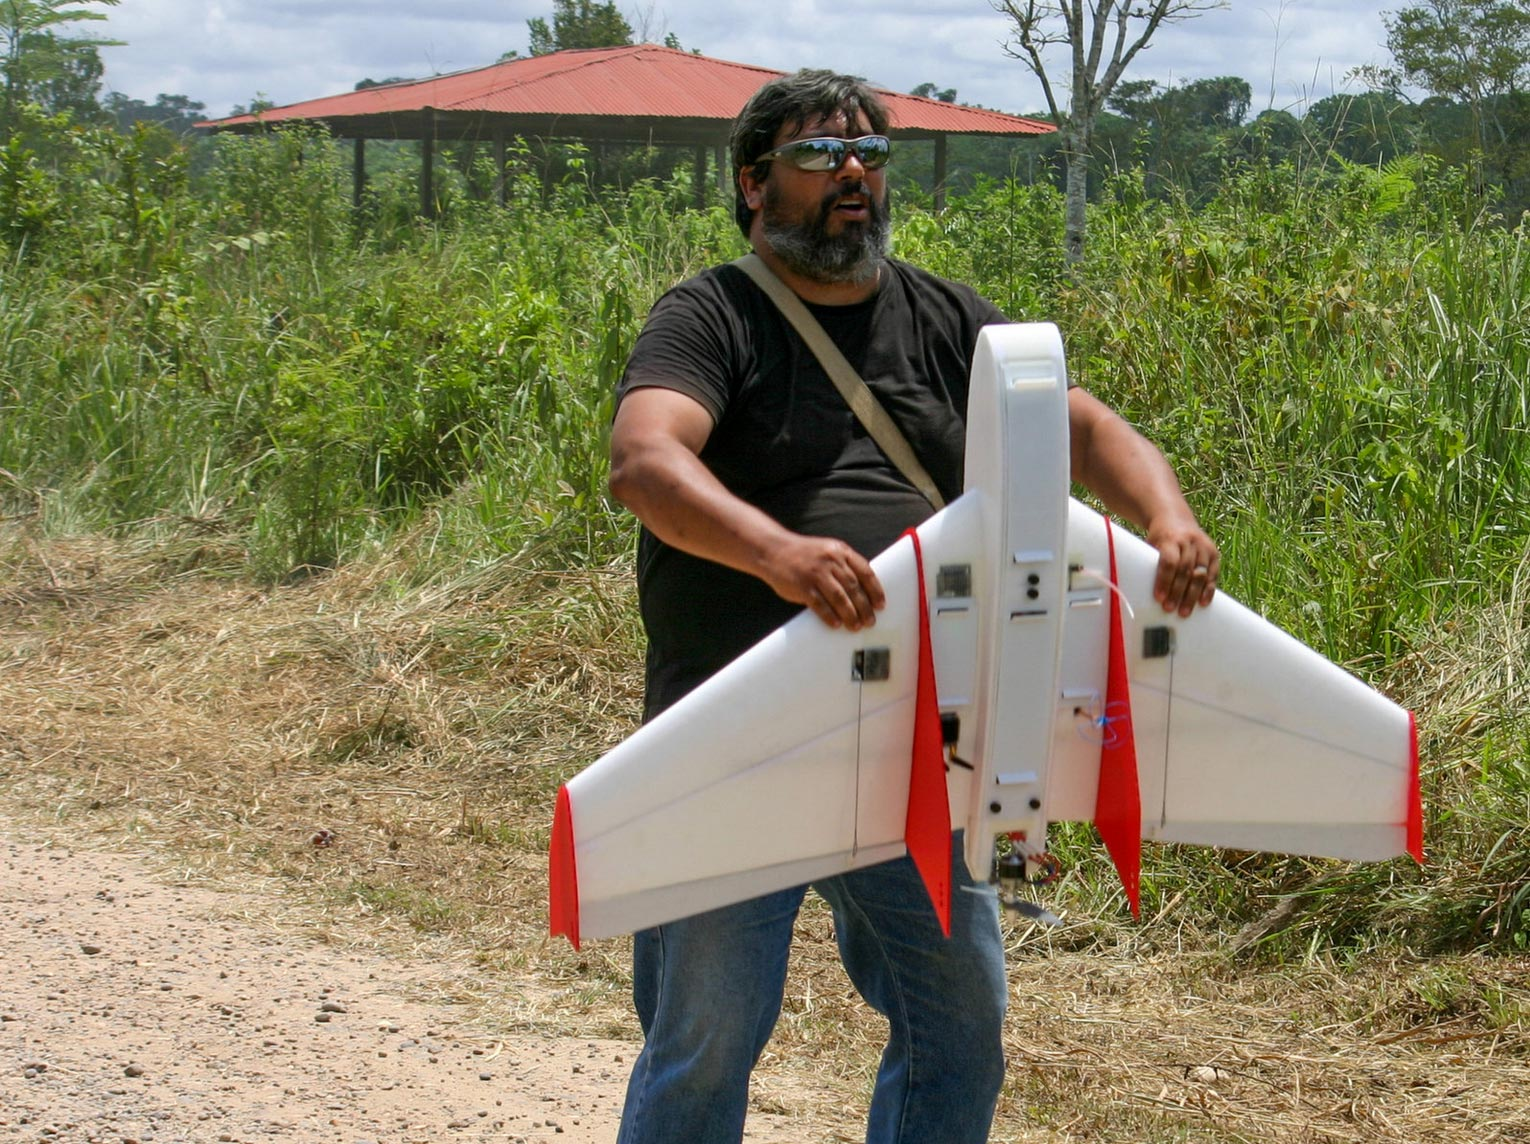 A student-designed drone is hunting illegal loggers in the Amazon Rainforest